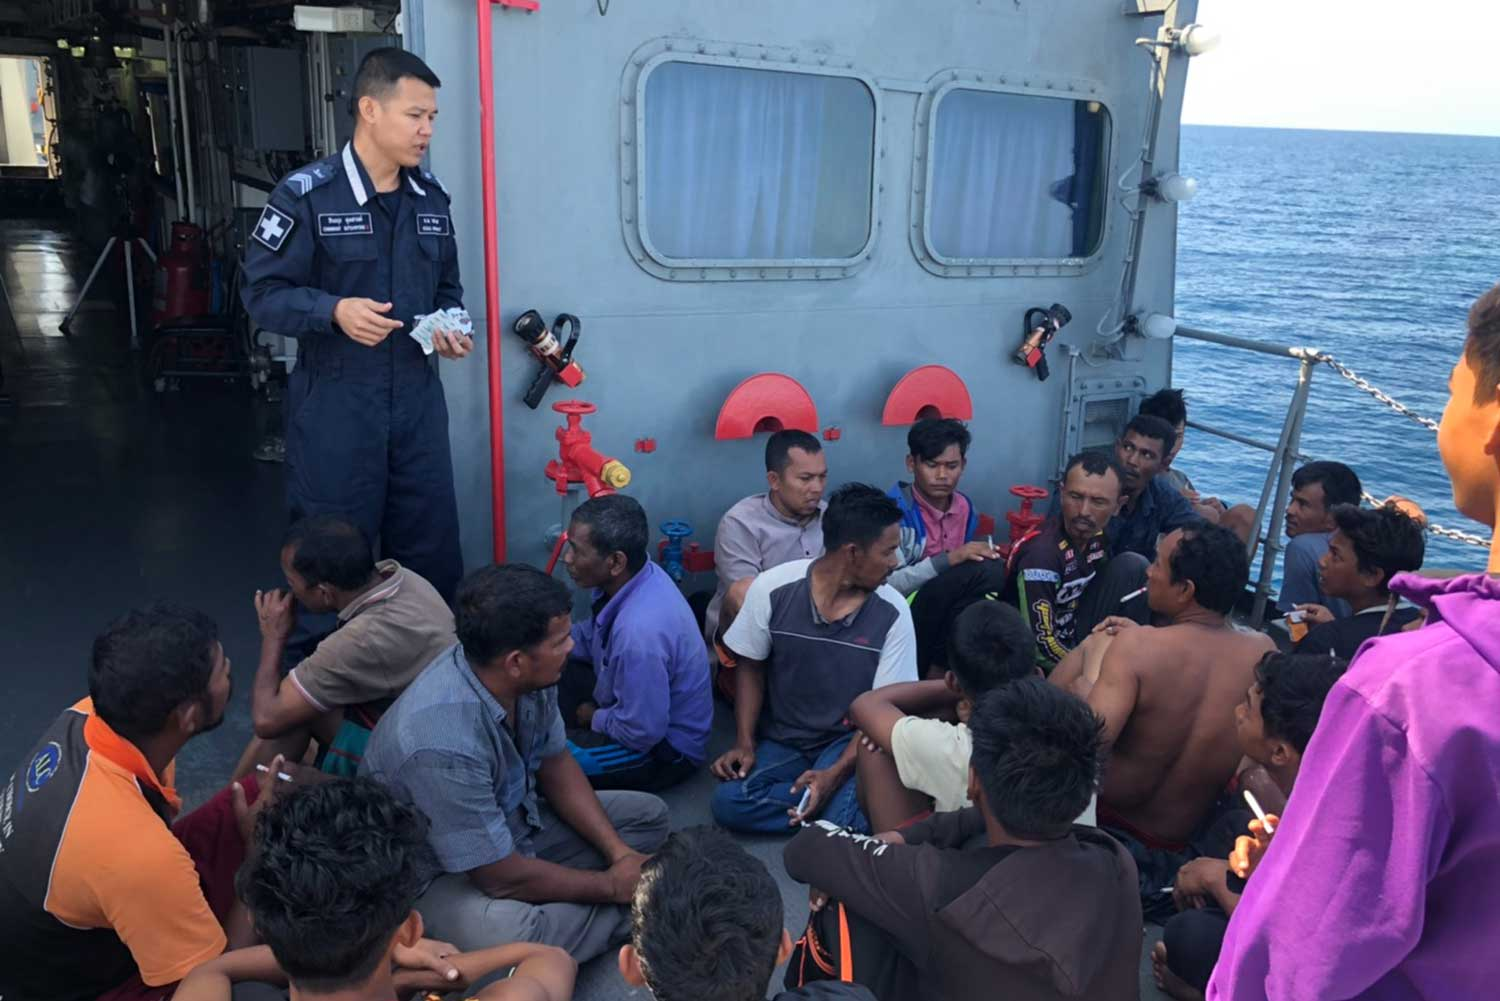 Crewmen and skippers on board two Indonesian fishing trawlers are detained for fishing illegally in Thai waters off Phangnga province on Tuesday morning. (Photo by Achadtaya Chuenniran)